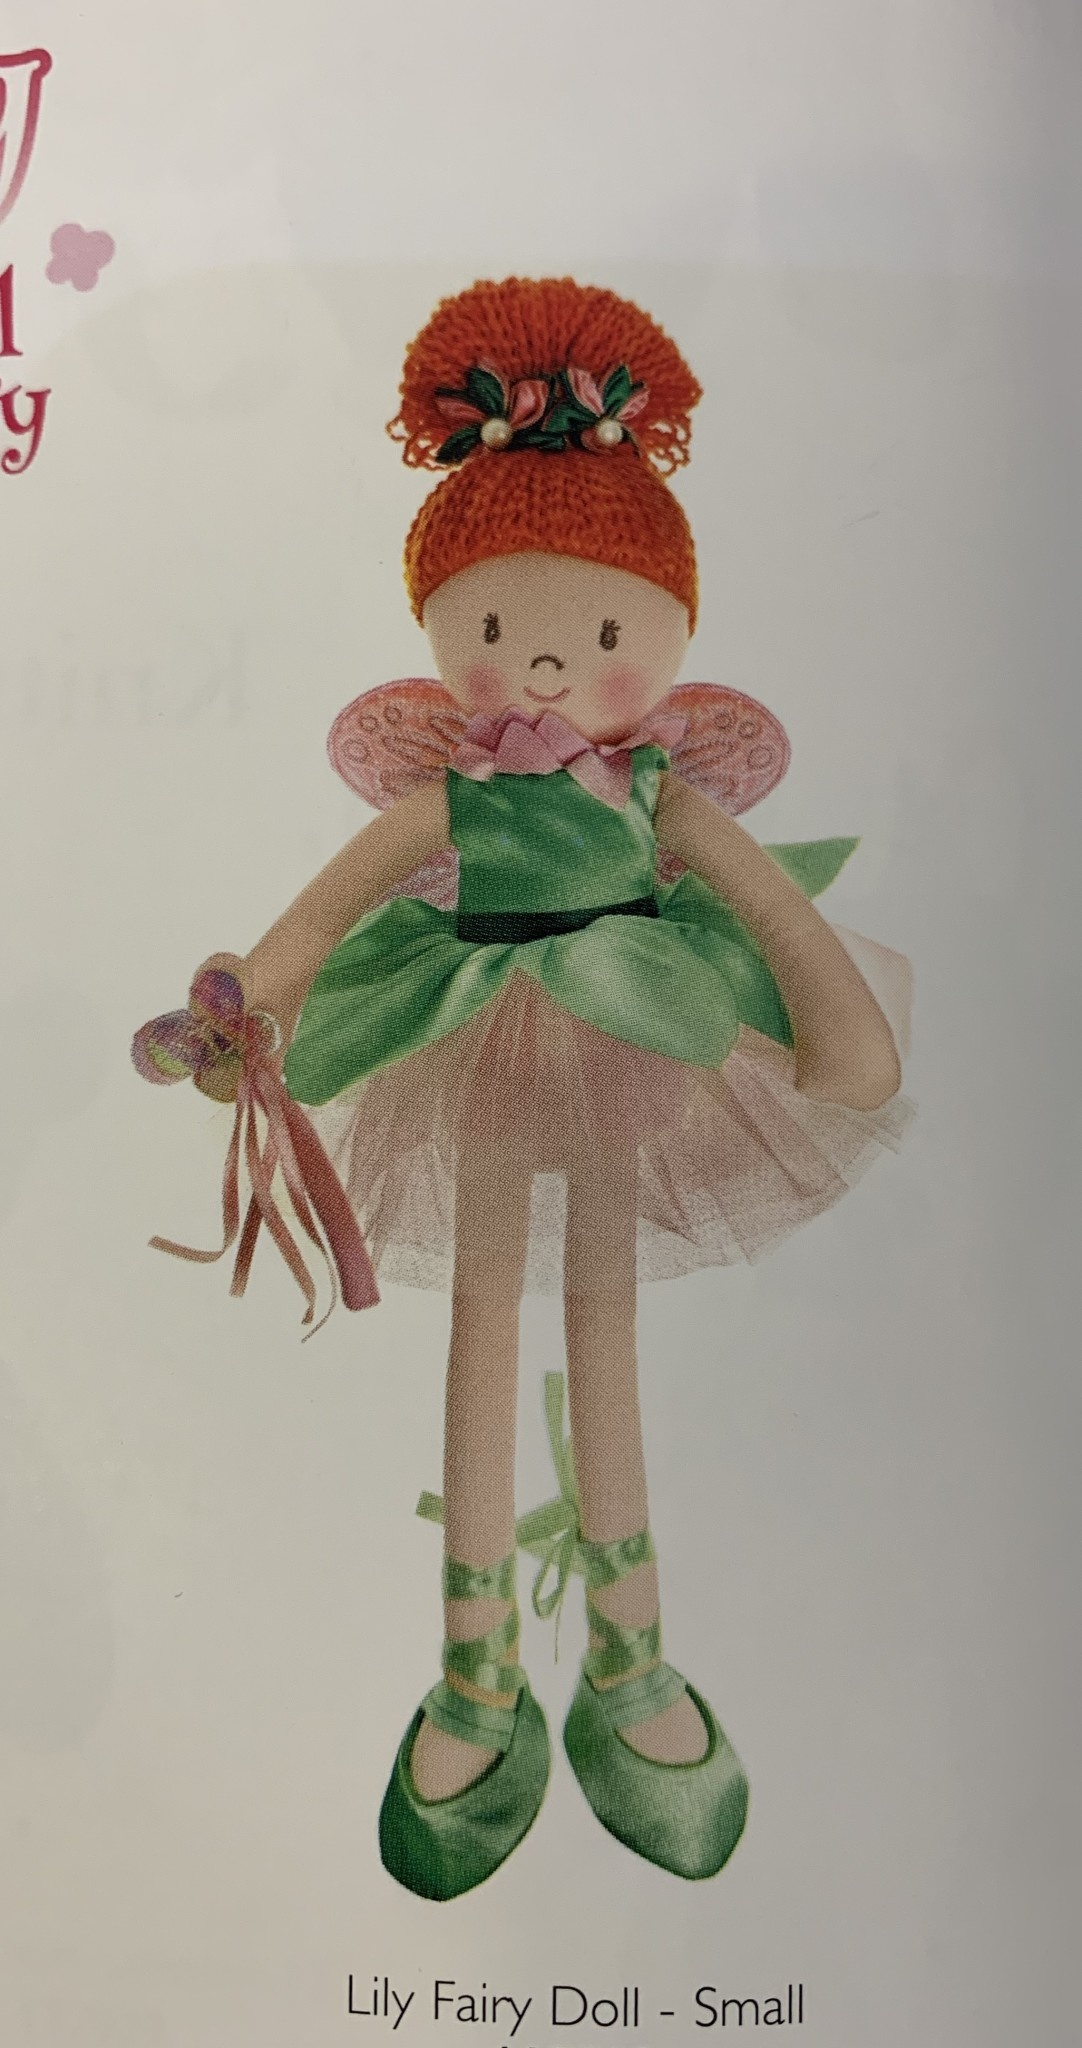 Doll: Lily Fairy Doll Small